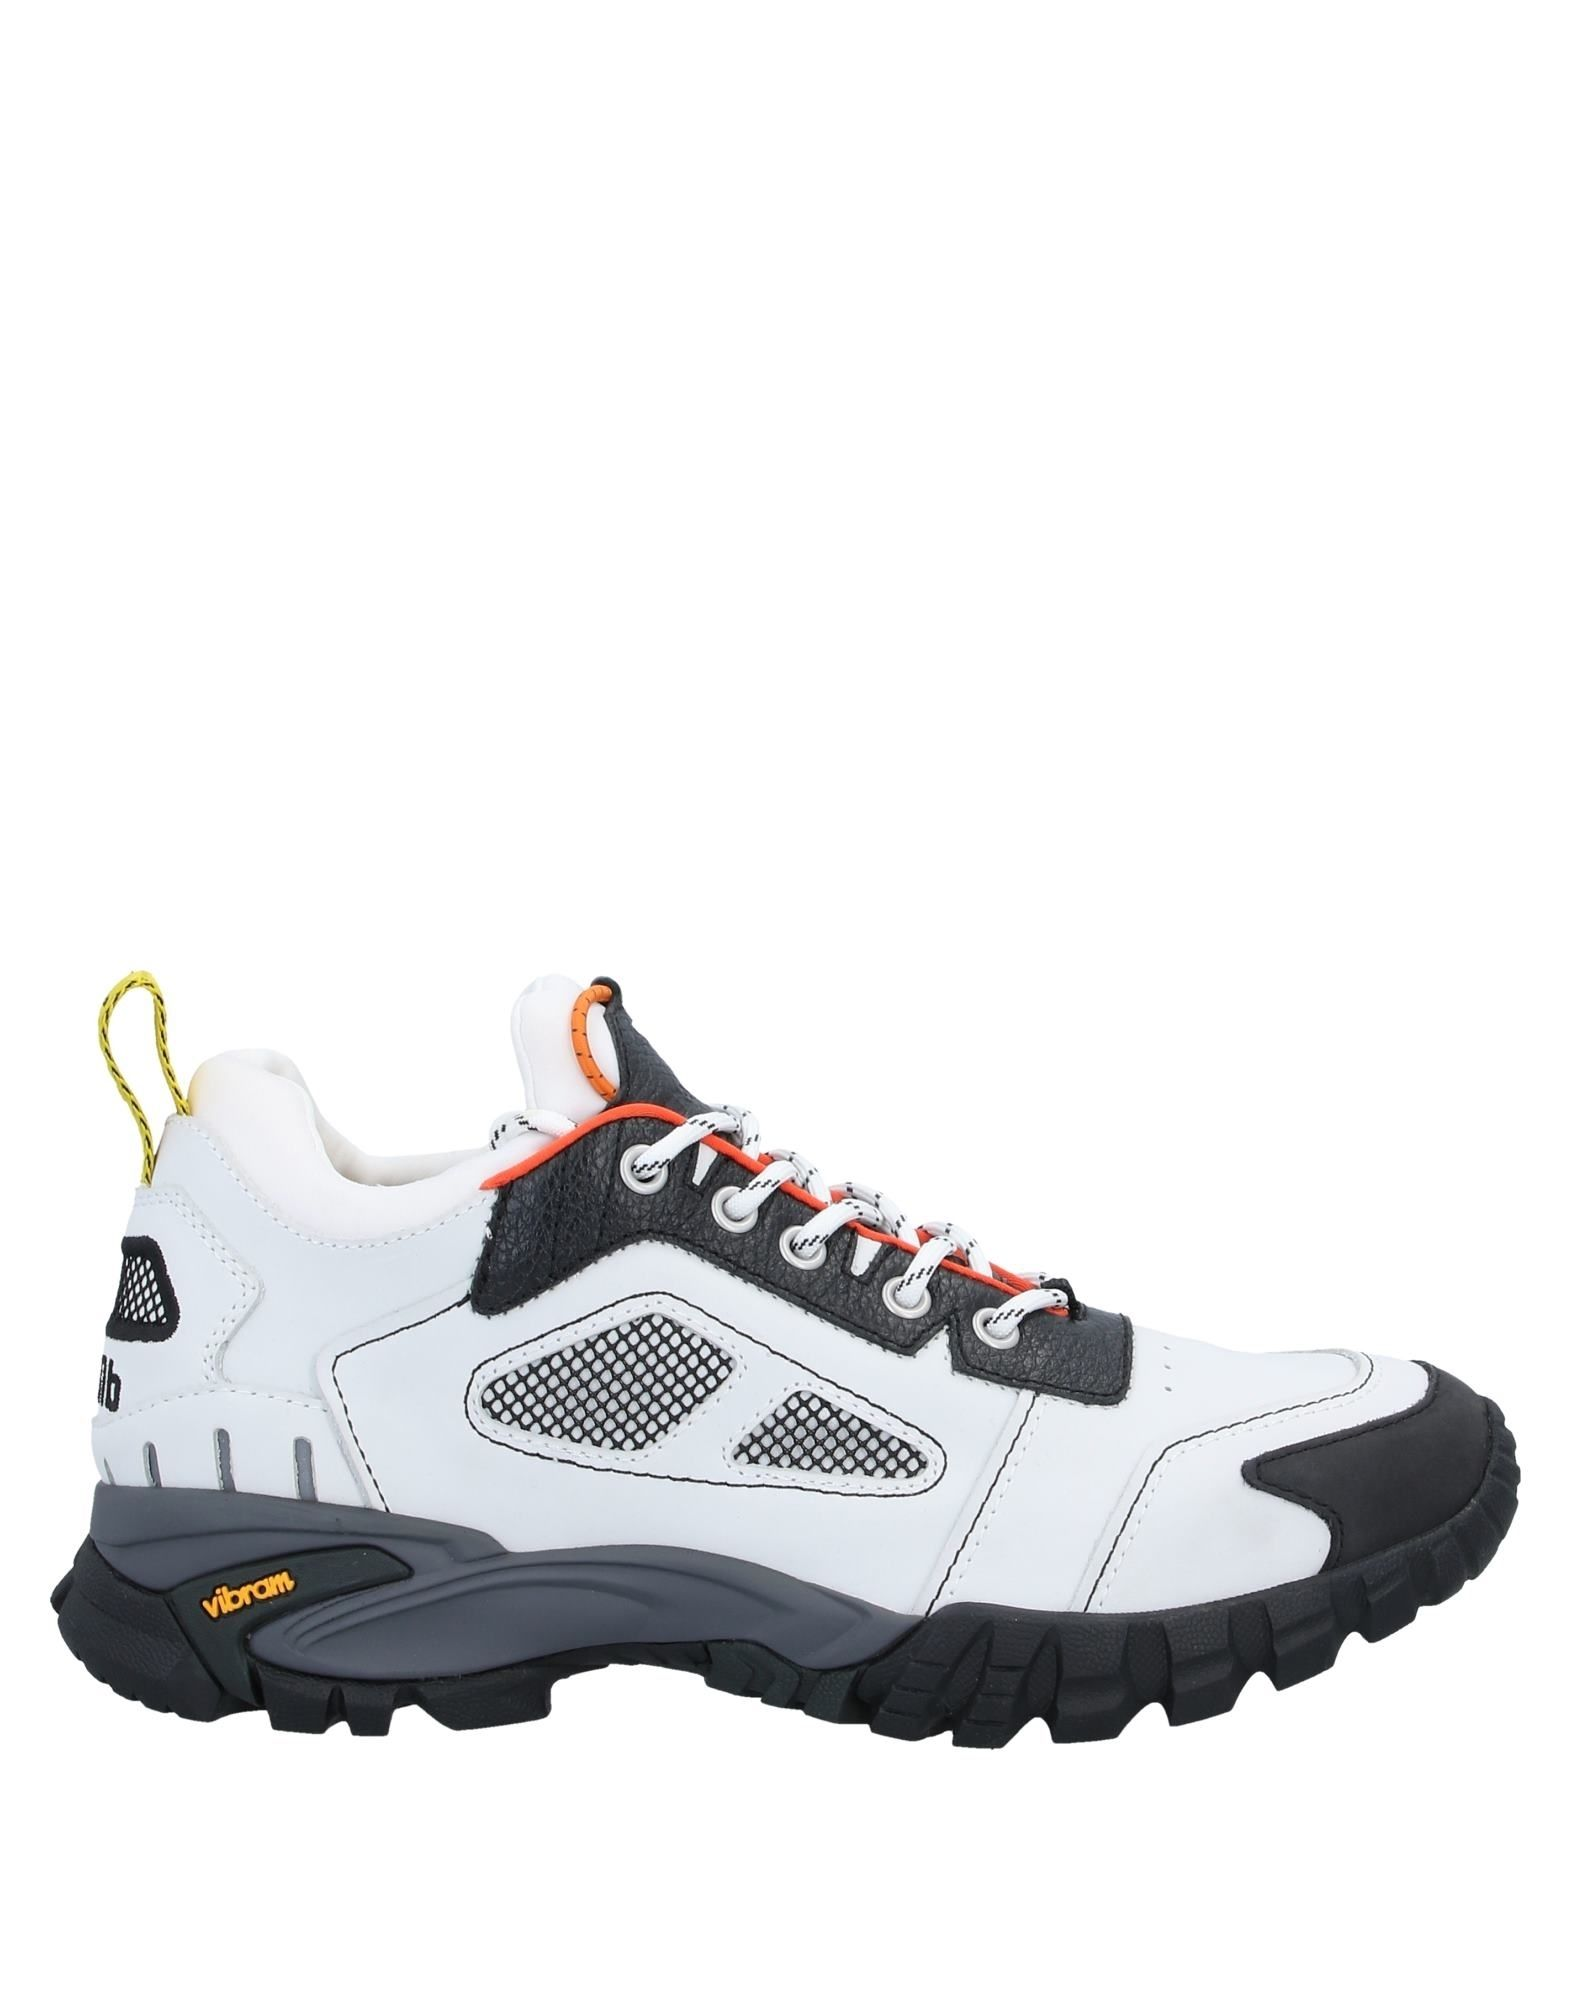 HERON PRESTON Sneakers. leather, logo, two-tone, laces, round toeline, flat, fabric inner, rubber sole, contains non-textile parts of animal origin. Soft Leather, Textile fibers